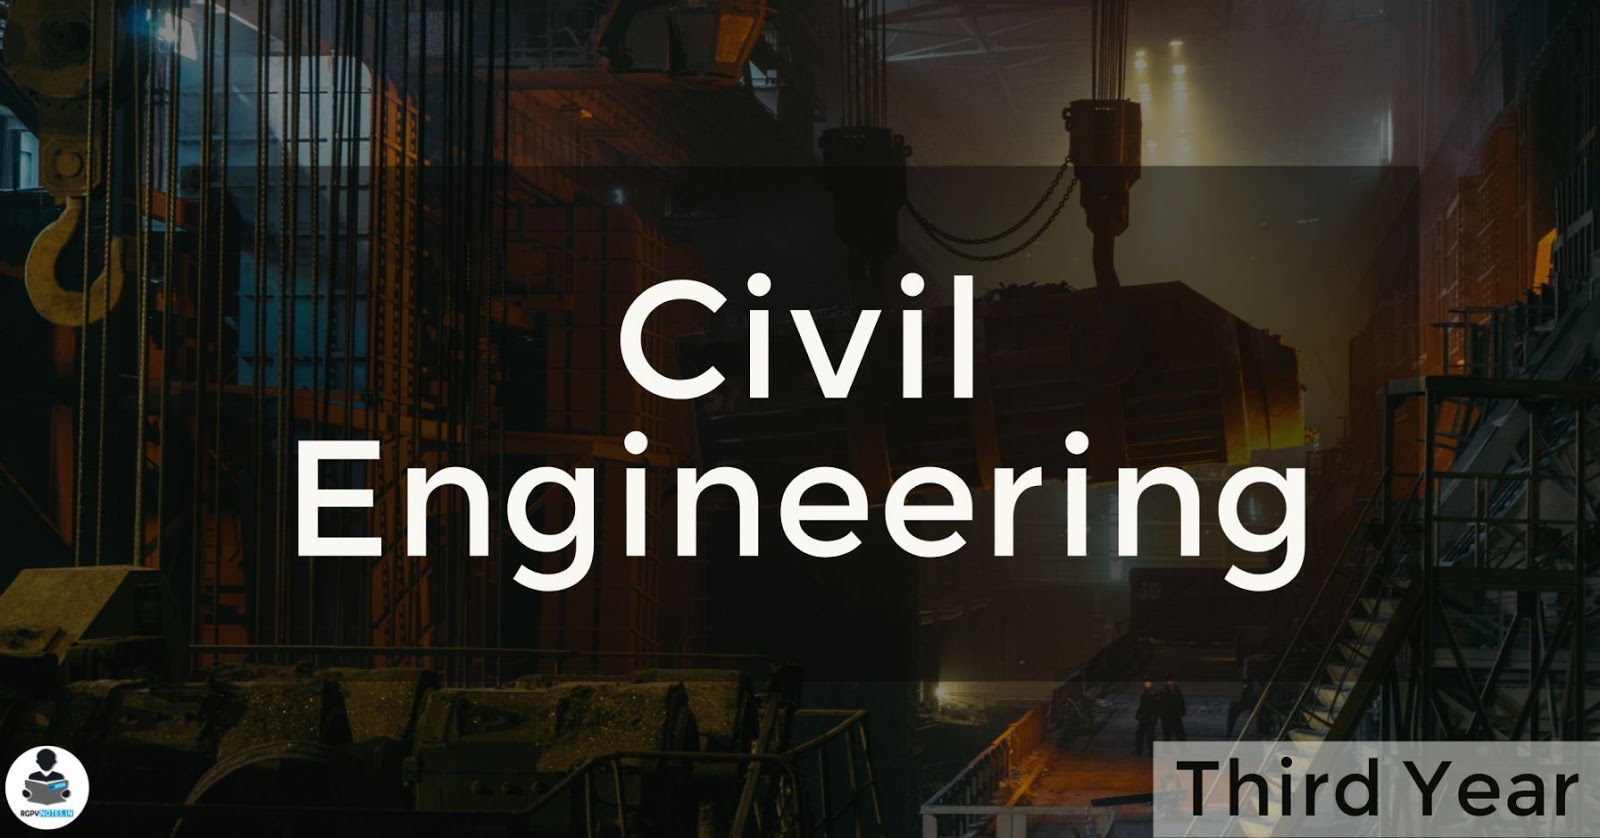 Civil Engineering - 3rd year RGPV notes CBGS